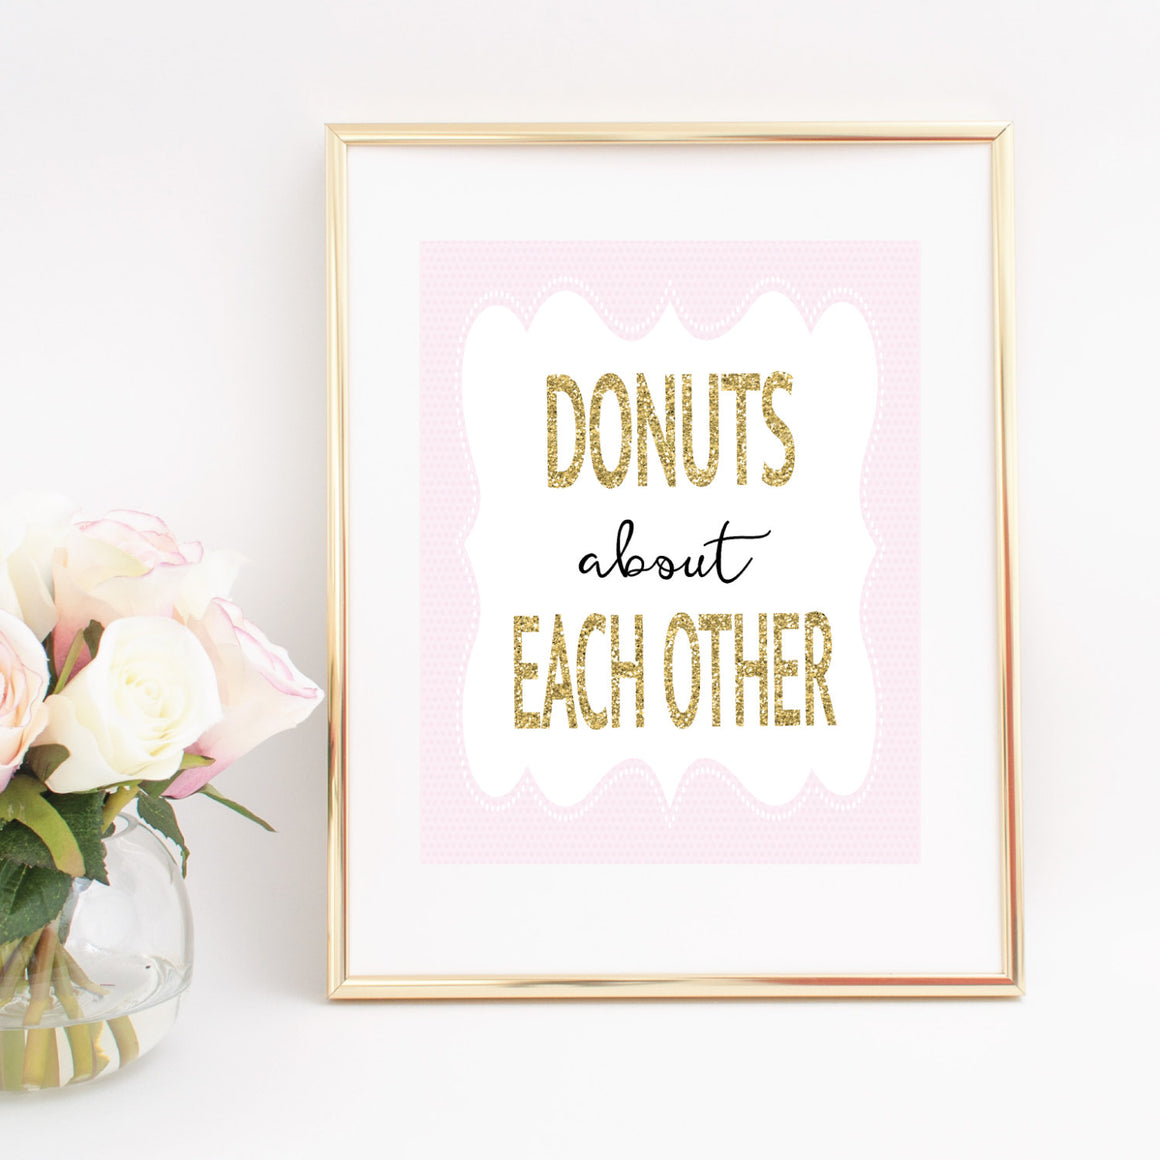 Donuts about each other digital download printable image in gold frame